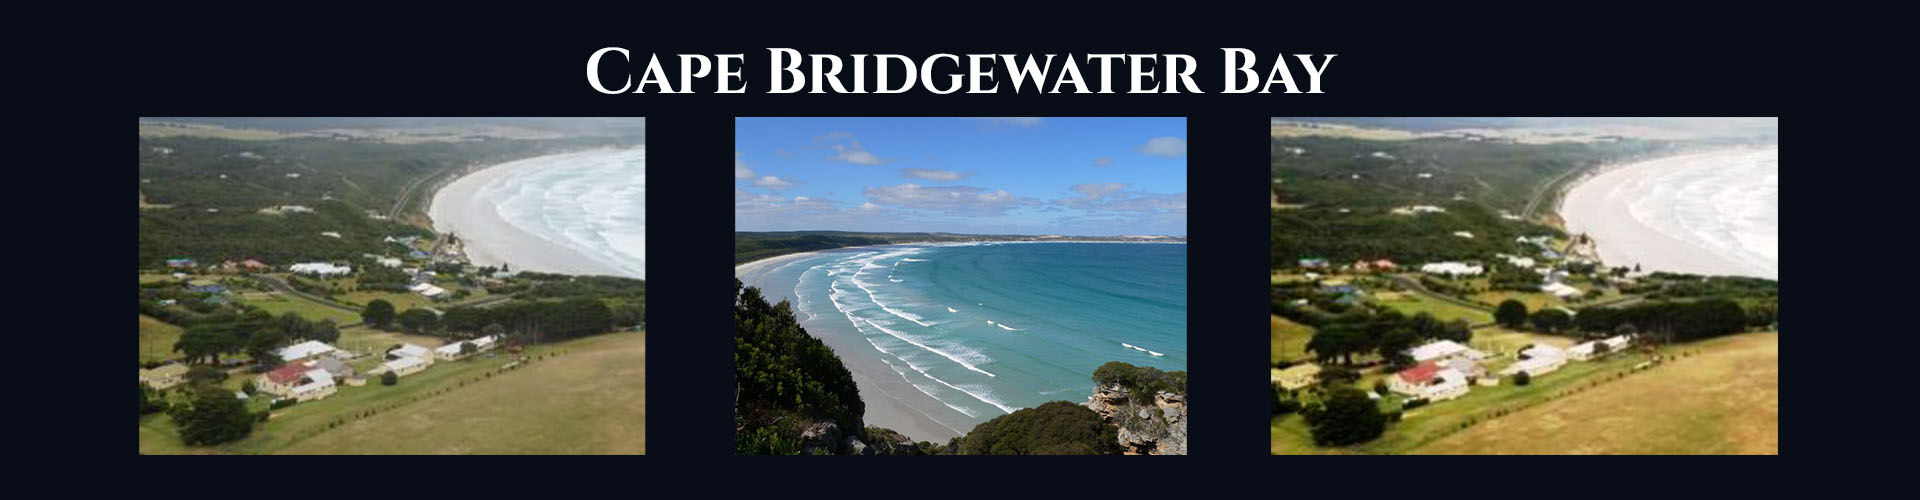 Absent Justice - Cape Bridgewater Bay